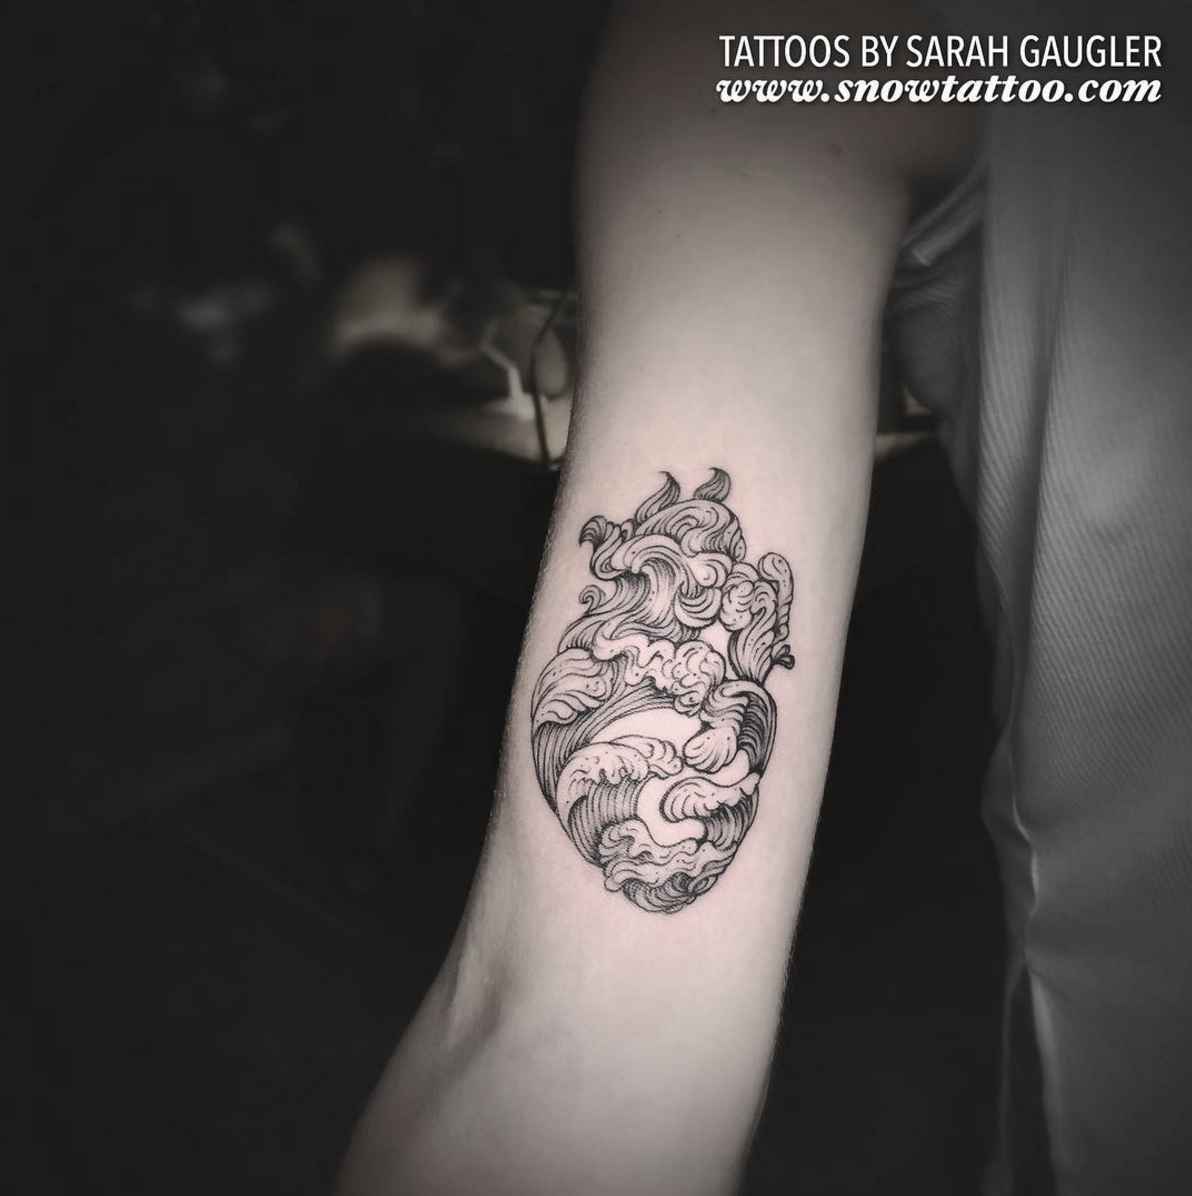 Sarah Gaugler Snow Tattoo Custom Heart Waves Intricate Detailed Original Linework Line Art Finelinetattoo Fine Line New York Best Tattoos Best Tattoo Artist NYC.png